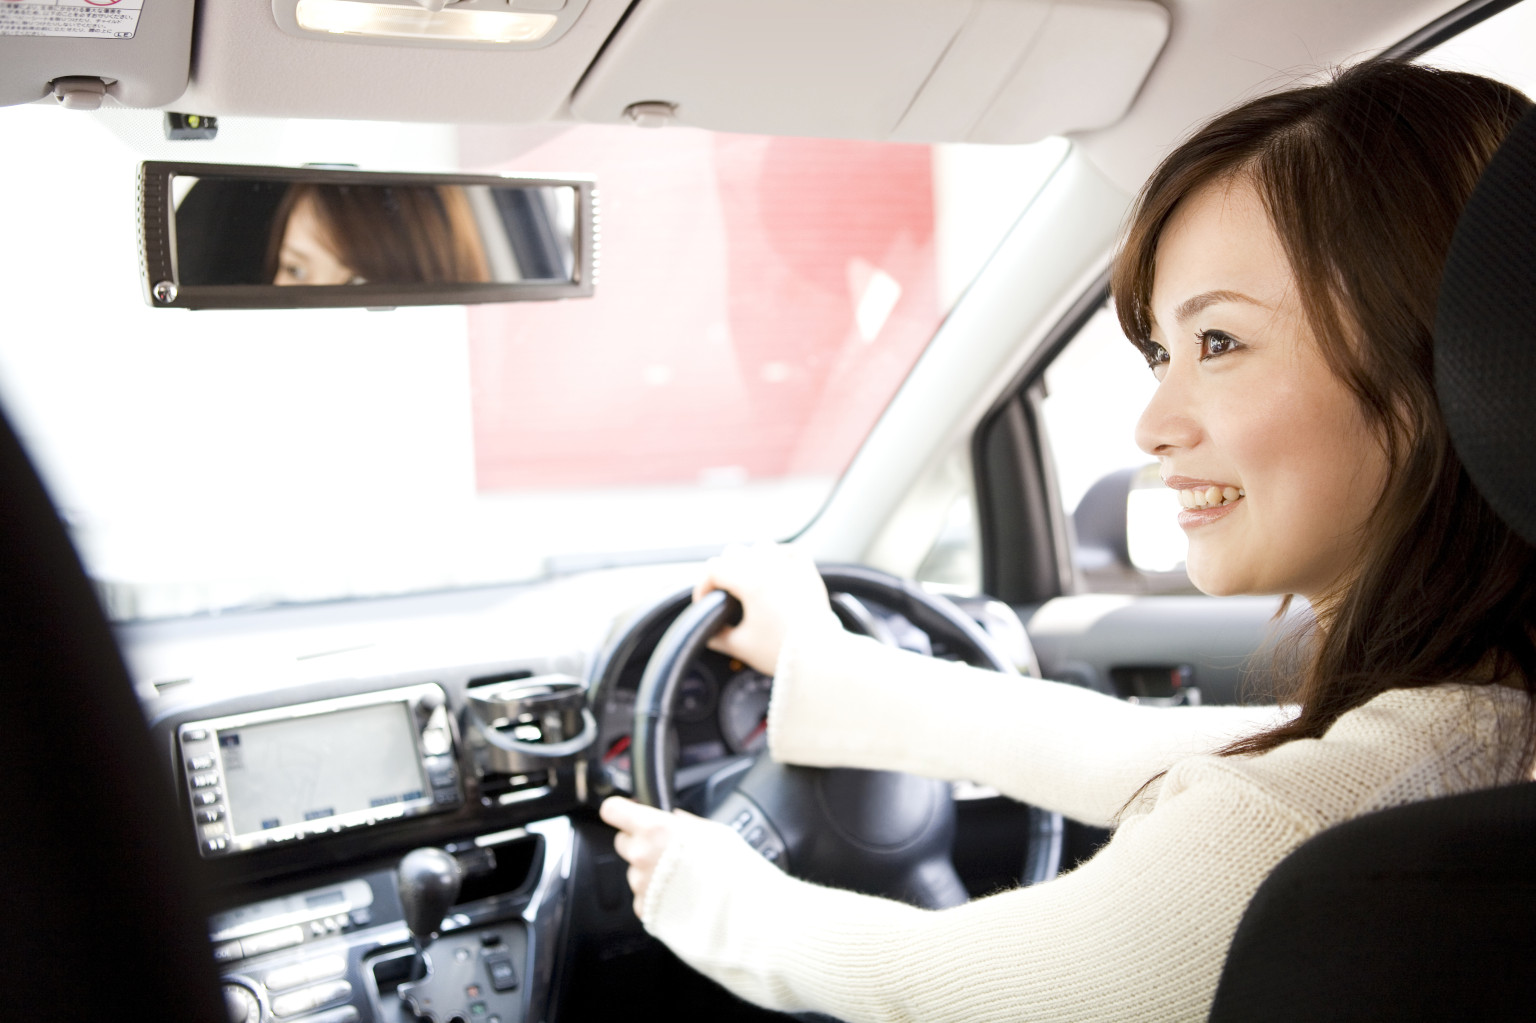 And have asian lady driving